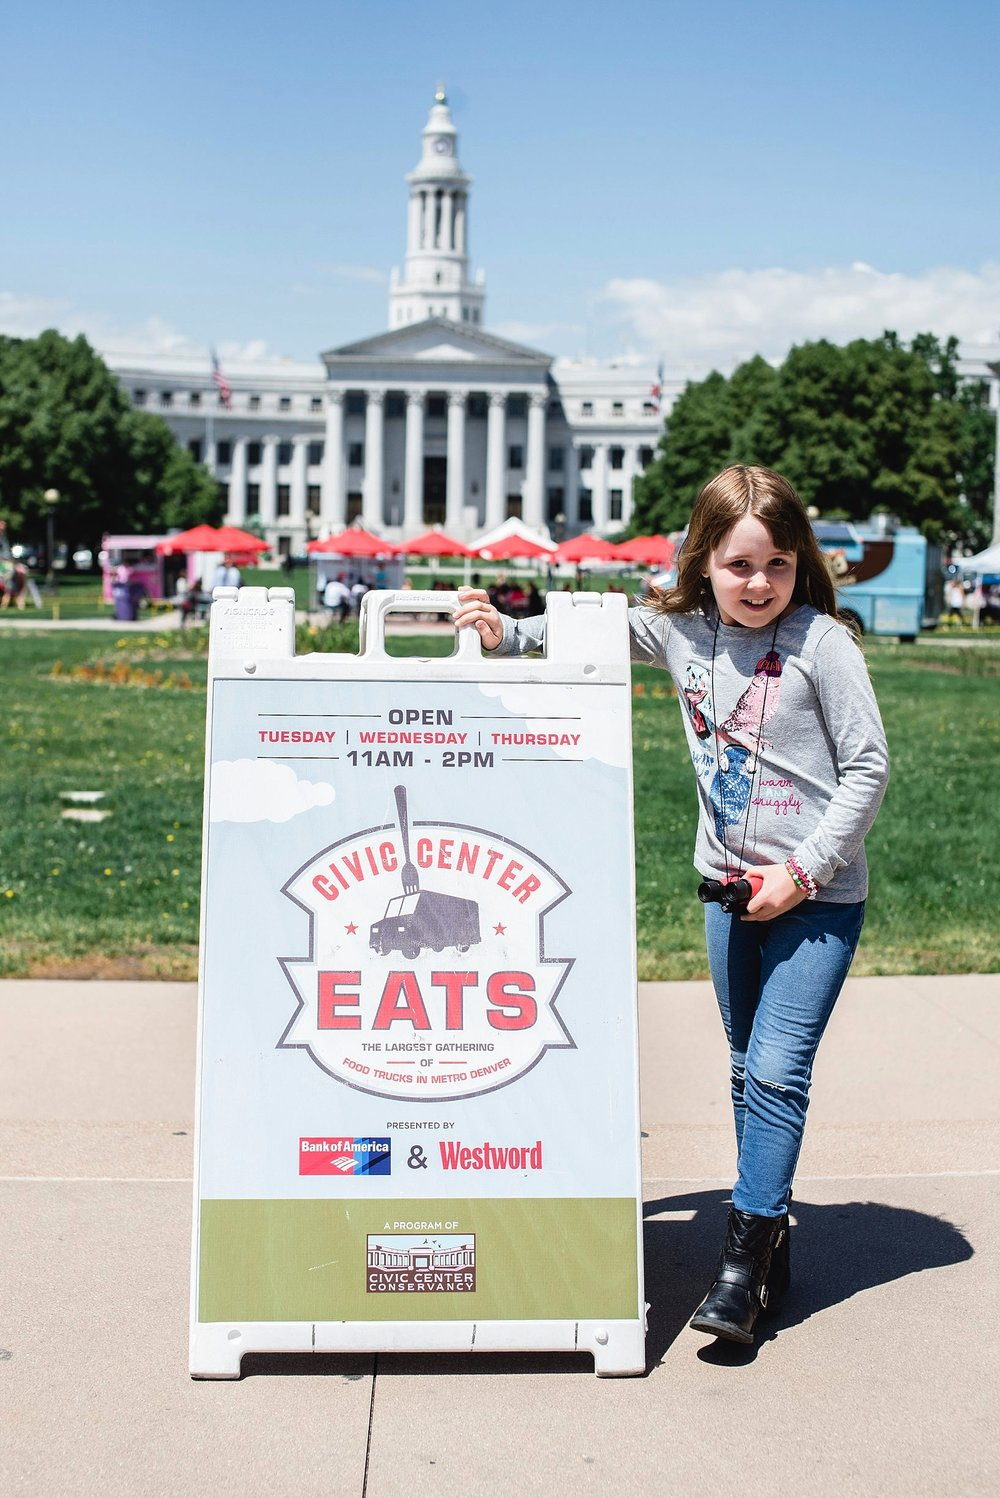 A girl stands next to the sign for civic center eats in downtown denver, co. Denver Family Photographer | LIfestyle photography